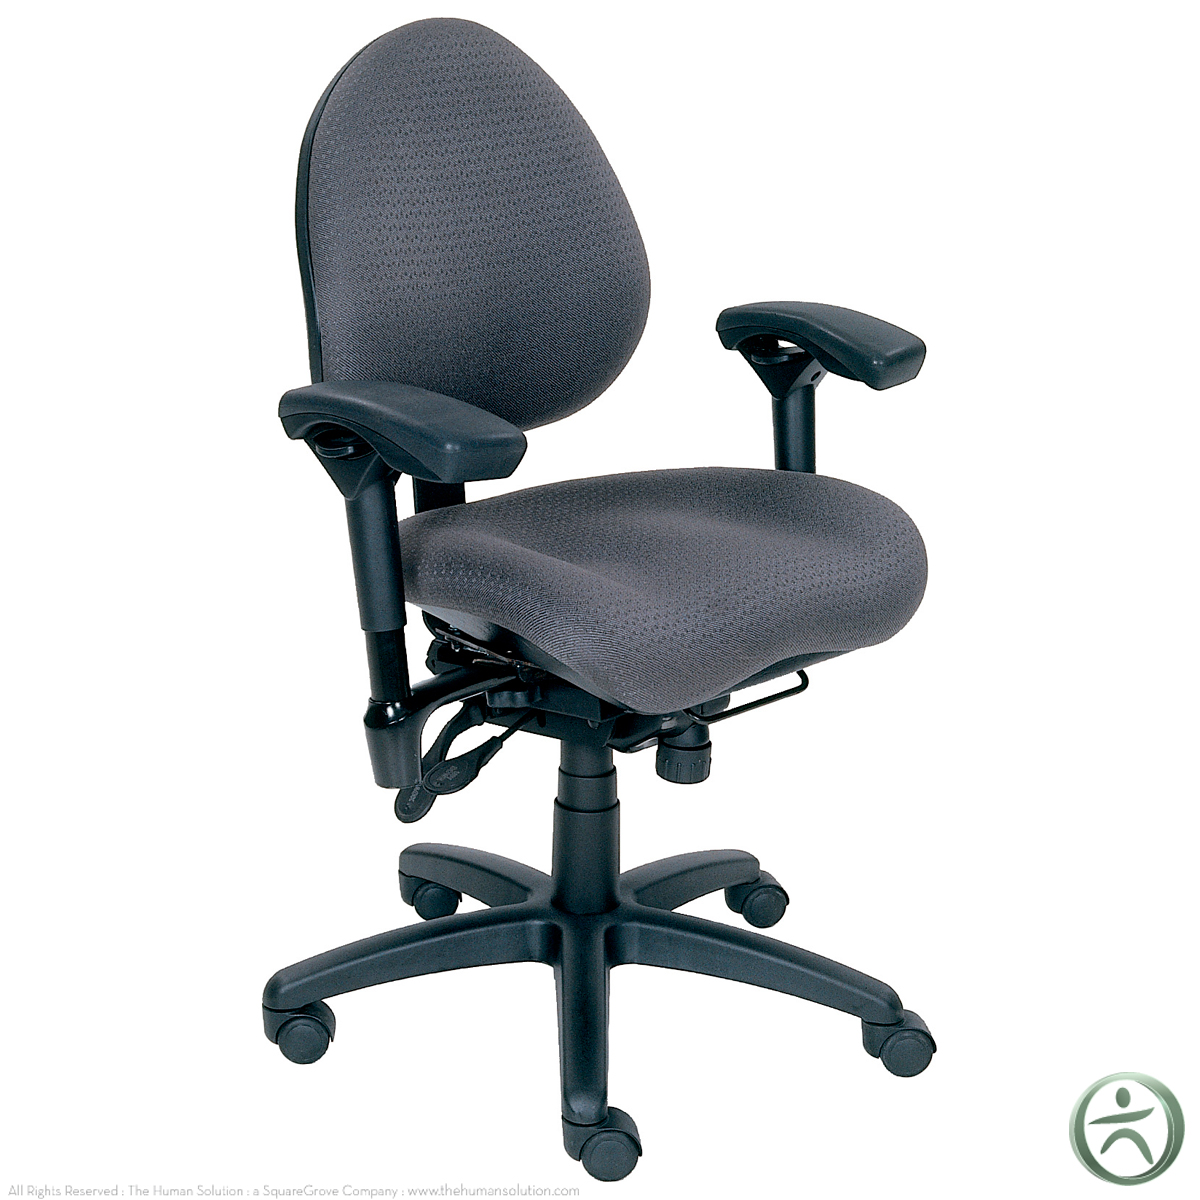 Ergonomic Chair Bodybilt 752 756 757 758 Ergonomic Task Chair Shop